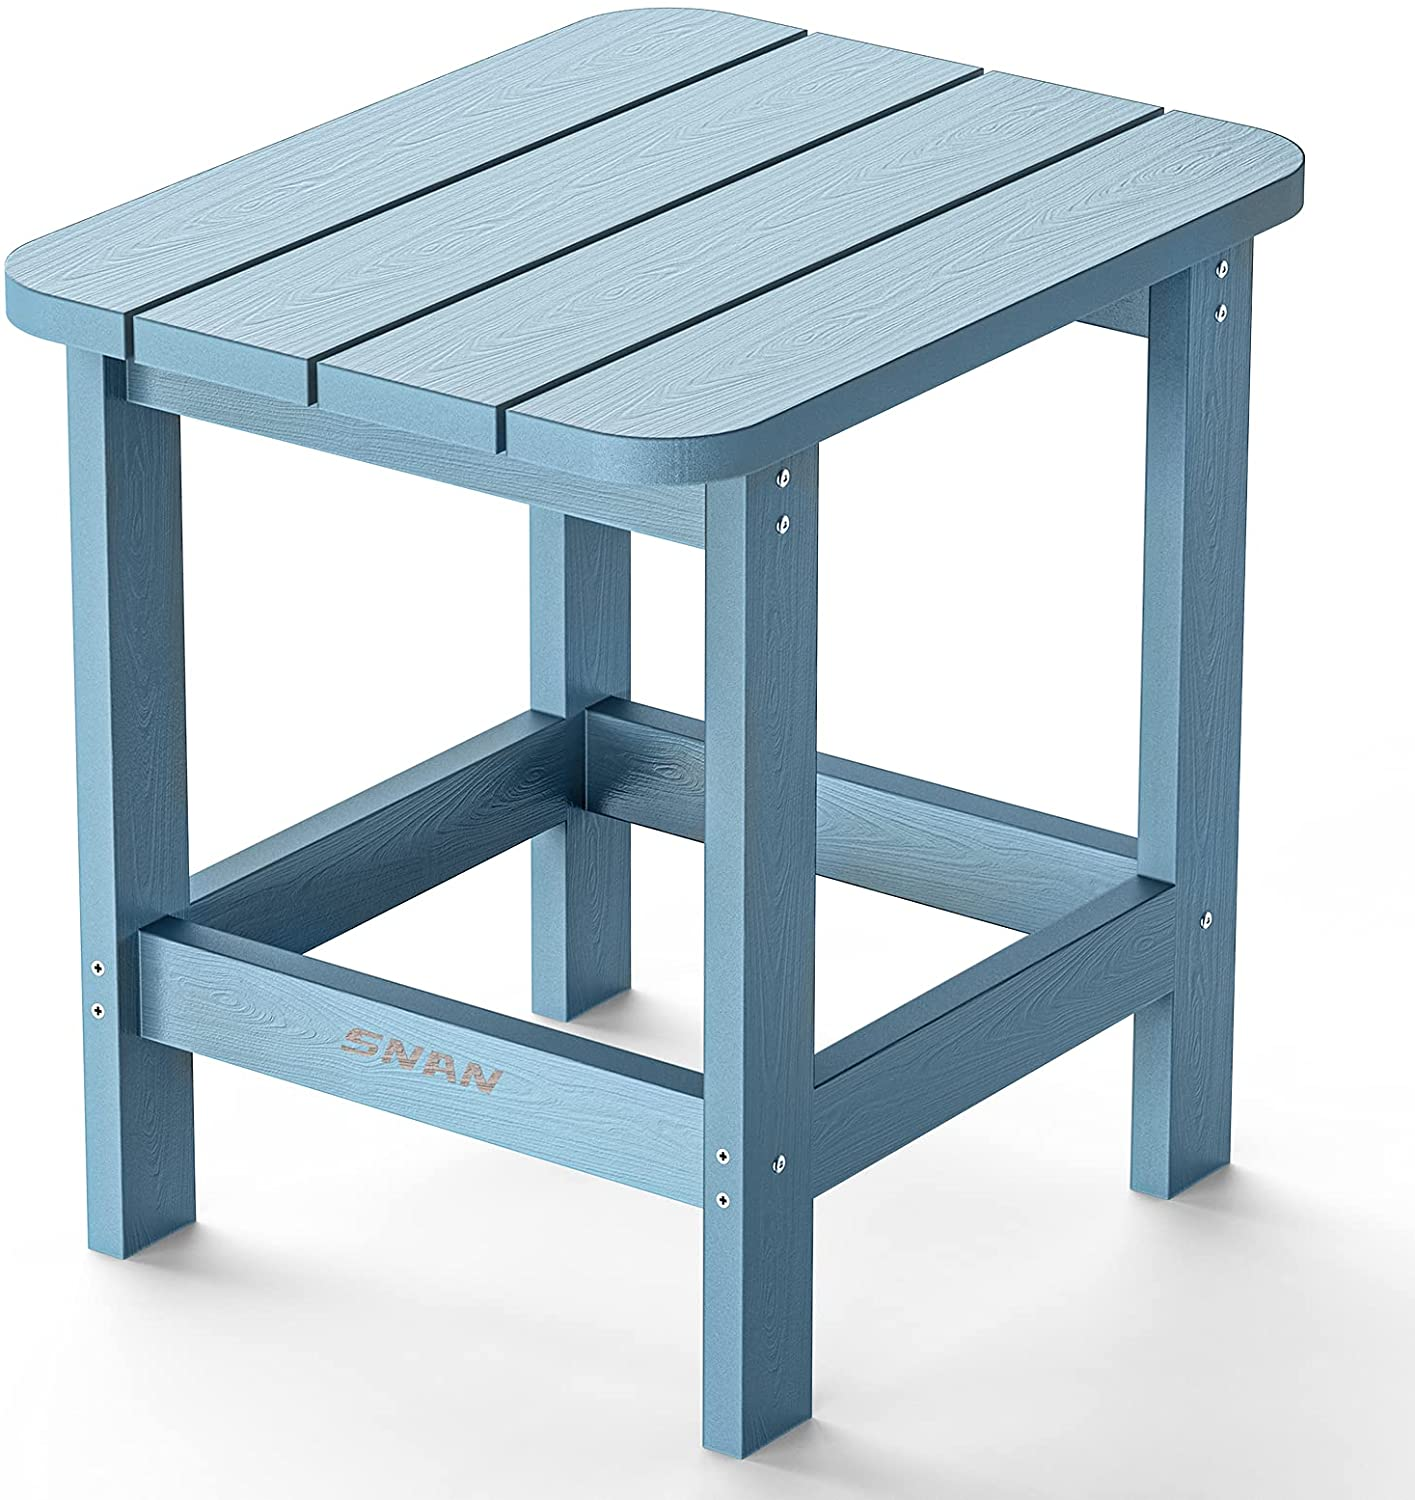 Outdoor Side Table, Adirondack Outdoor Side Table for Garden, Porch, Beach, Indoors and More, 18.9L 14.9W 18.1H Inches, Blue : Patio, Lawn & Garden